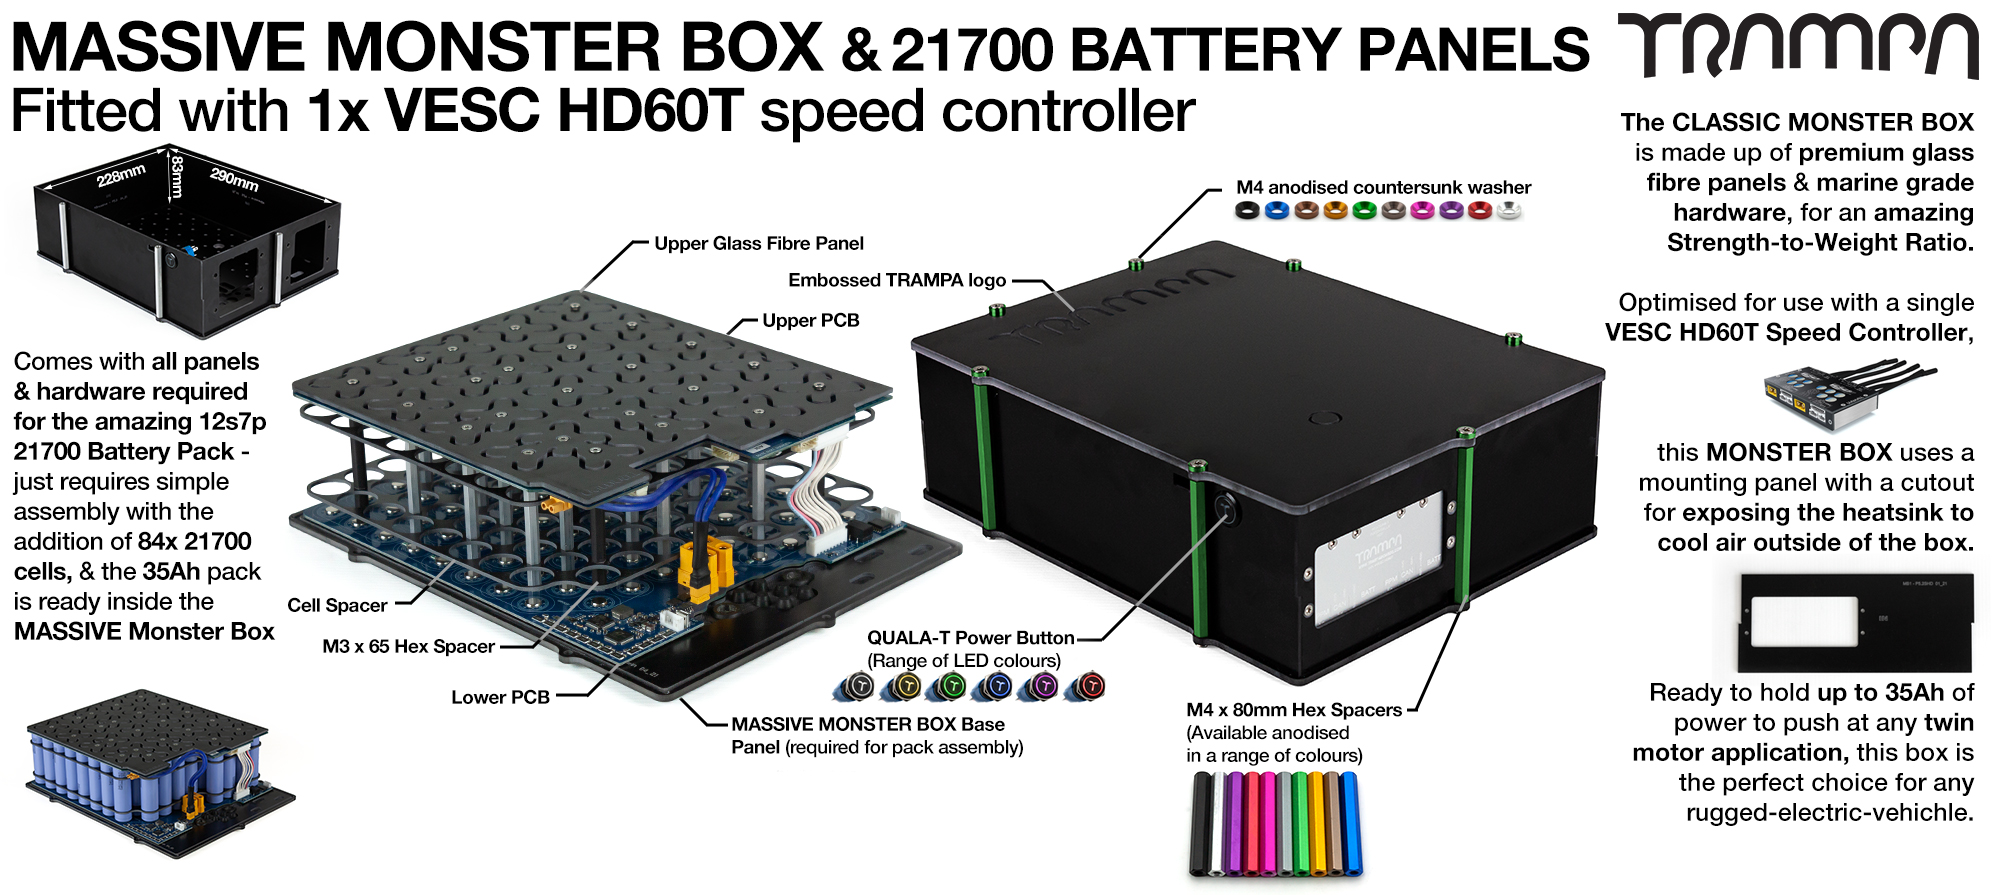 21700 2WD MASSIVE MONSTER Box with 21700 PCB Pack with 1x VESC HD-60Twin - NO CELLS